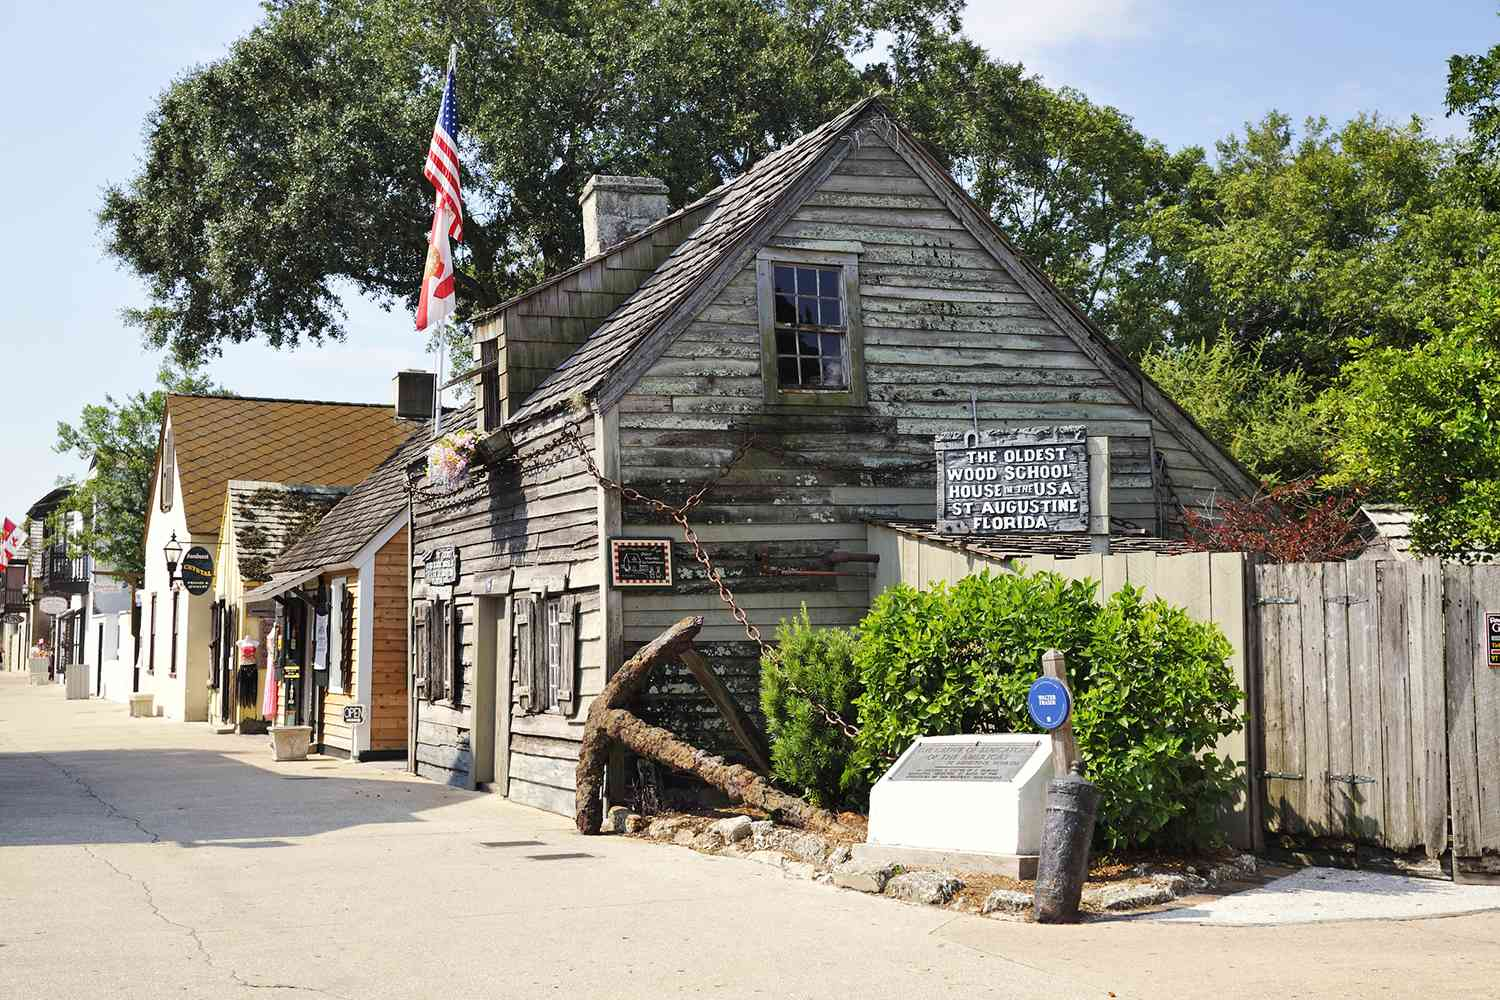 St. Augustine's Old Town Historic District